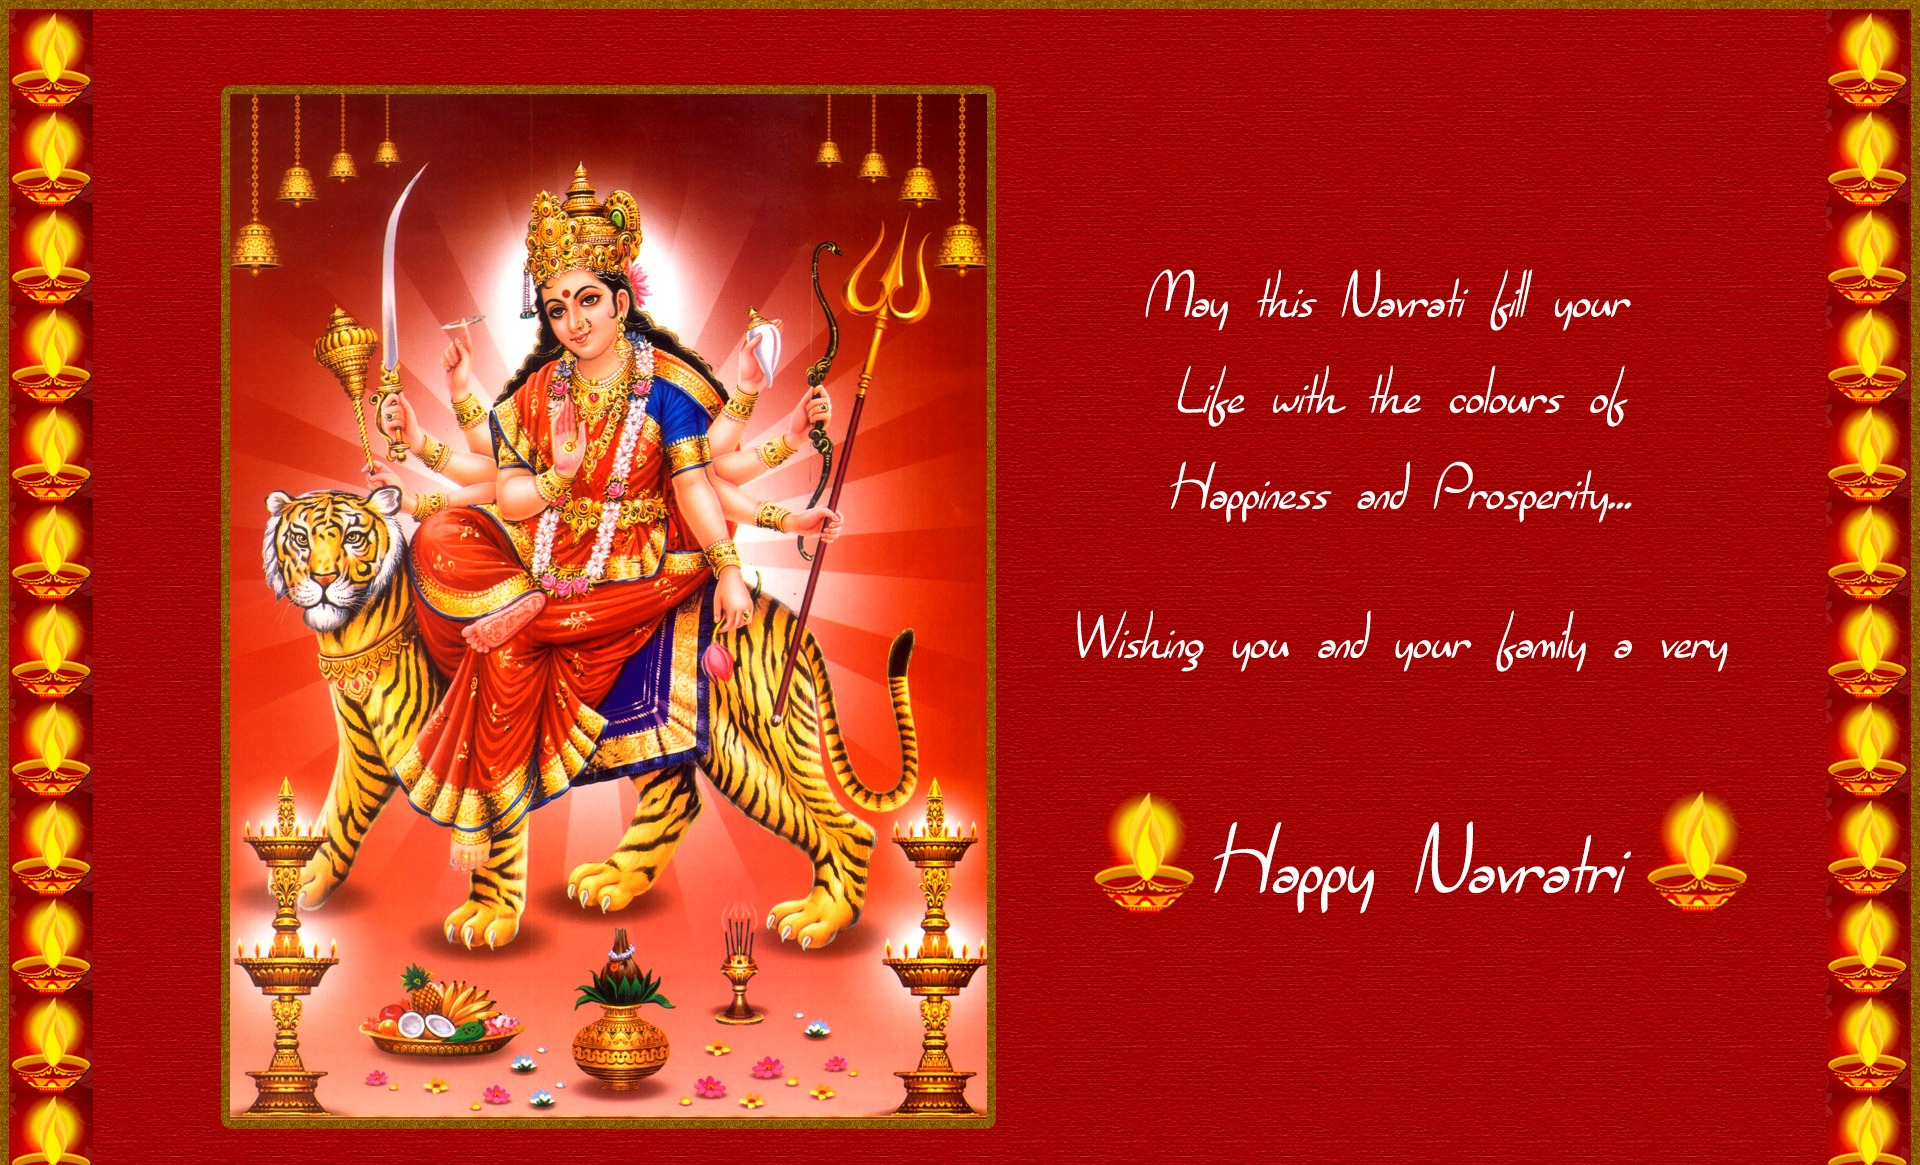 Happy Navratri Wishes Greeting Cards & Ecards in English For WhatsApp & Facebook